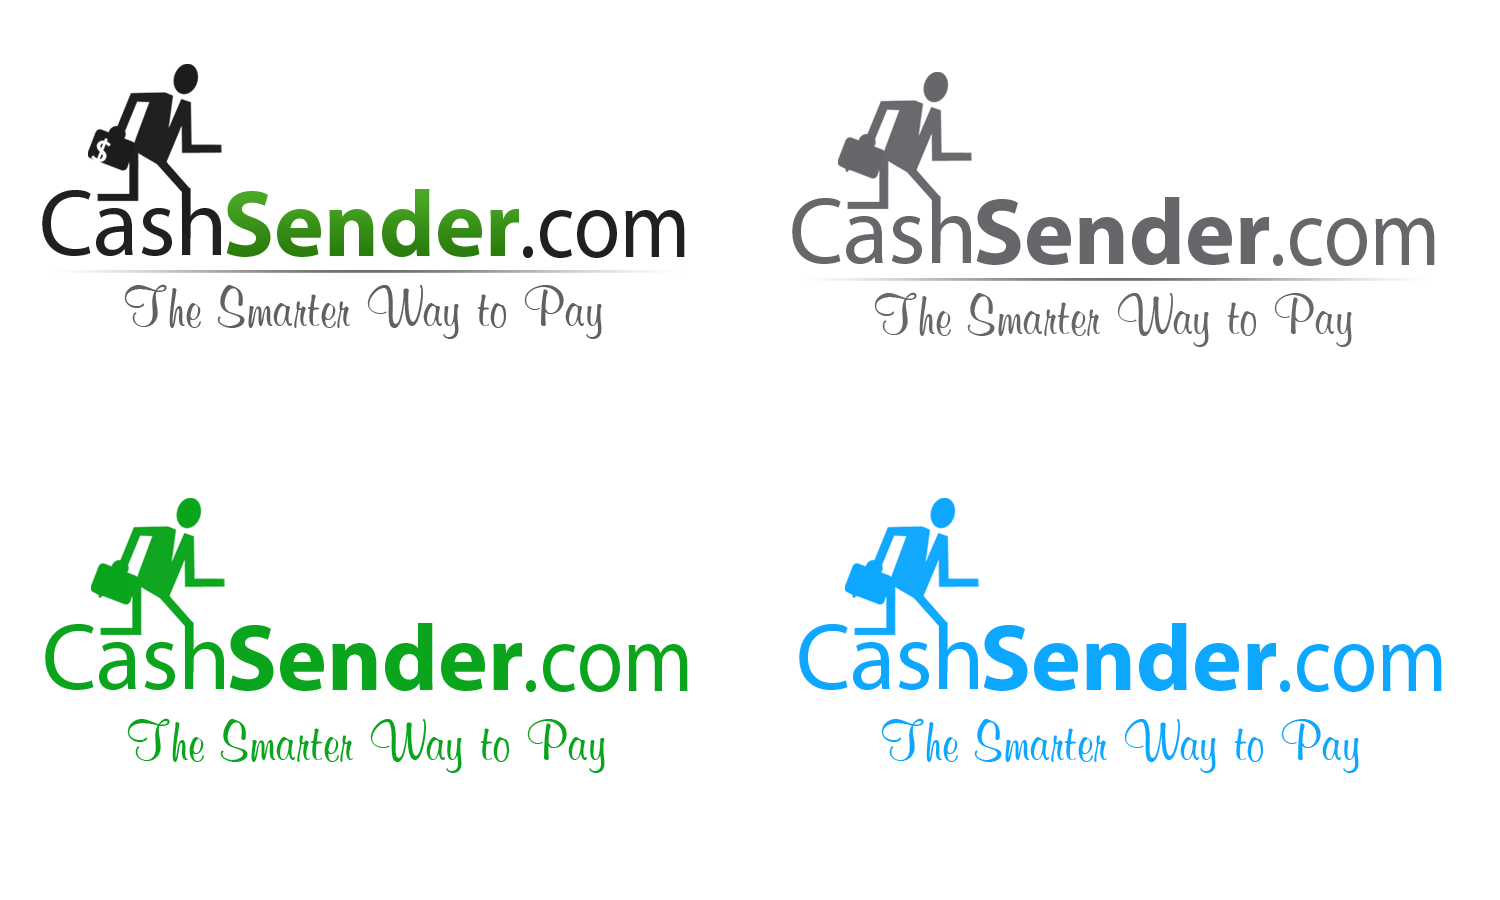 Logo Design by golden-hand - Entry No. 64 in the Logo Design Contest Logo Design needed for alternative payment site CashSender.com.